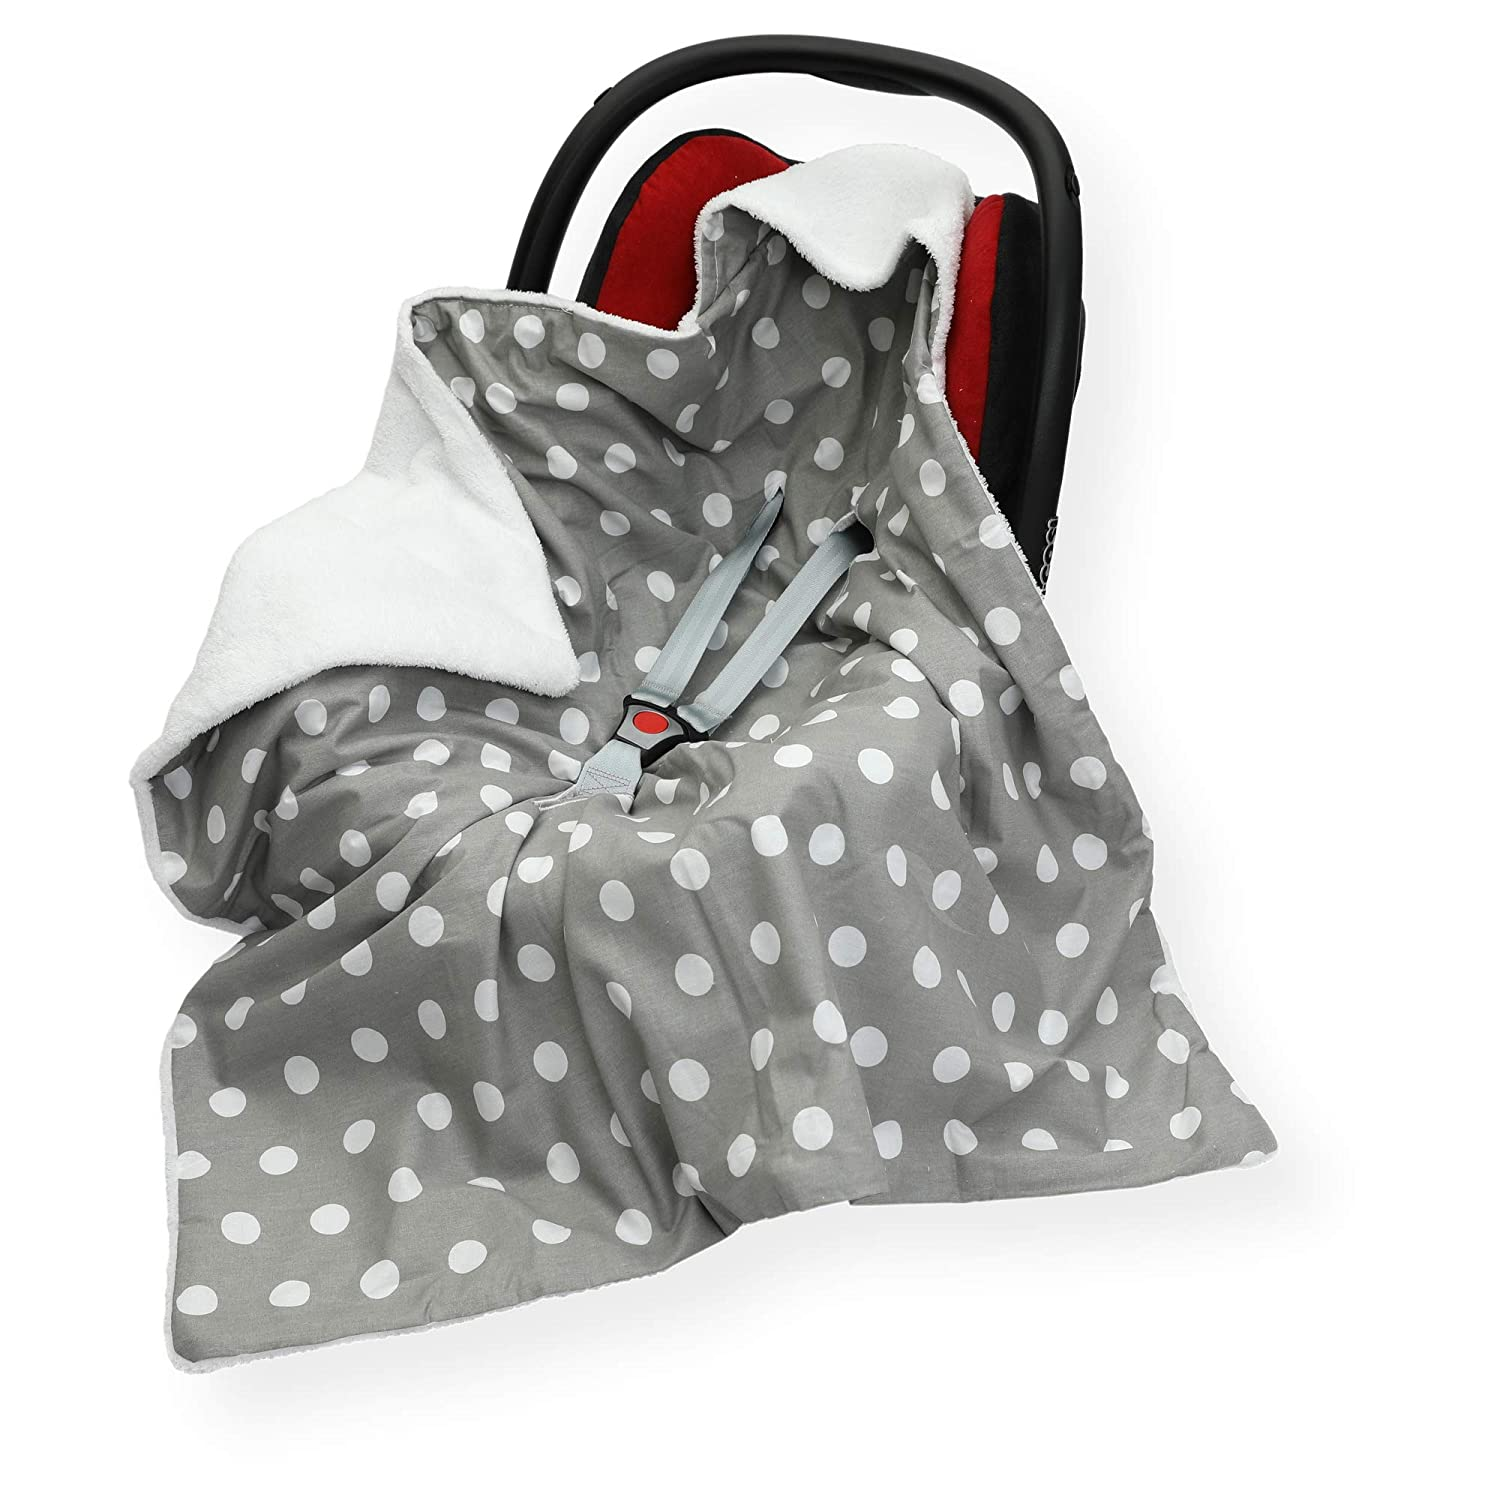 Cover SM Star - Pink//Grey Sided 100 x 100cm Hooded Blanket with SEAT Belt Holes FOOTMUFF Double COSYTOES CAR SEAT Blanket